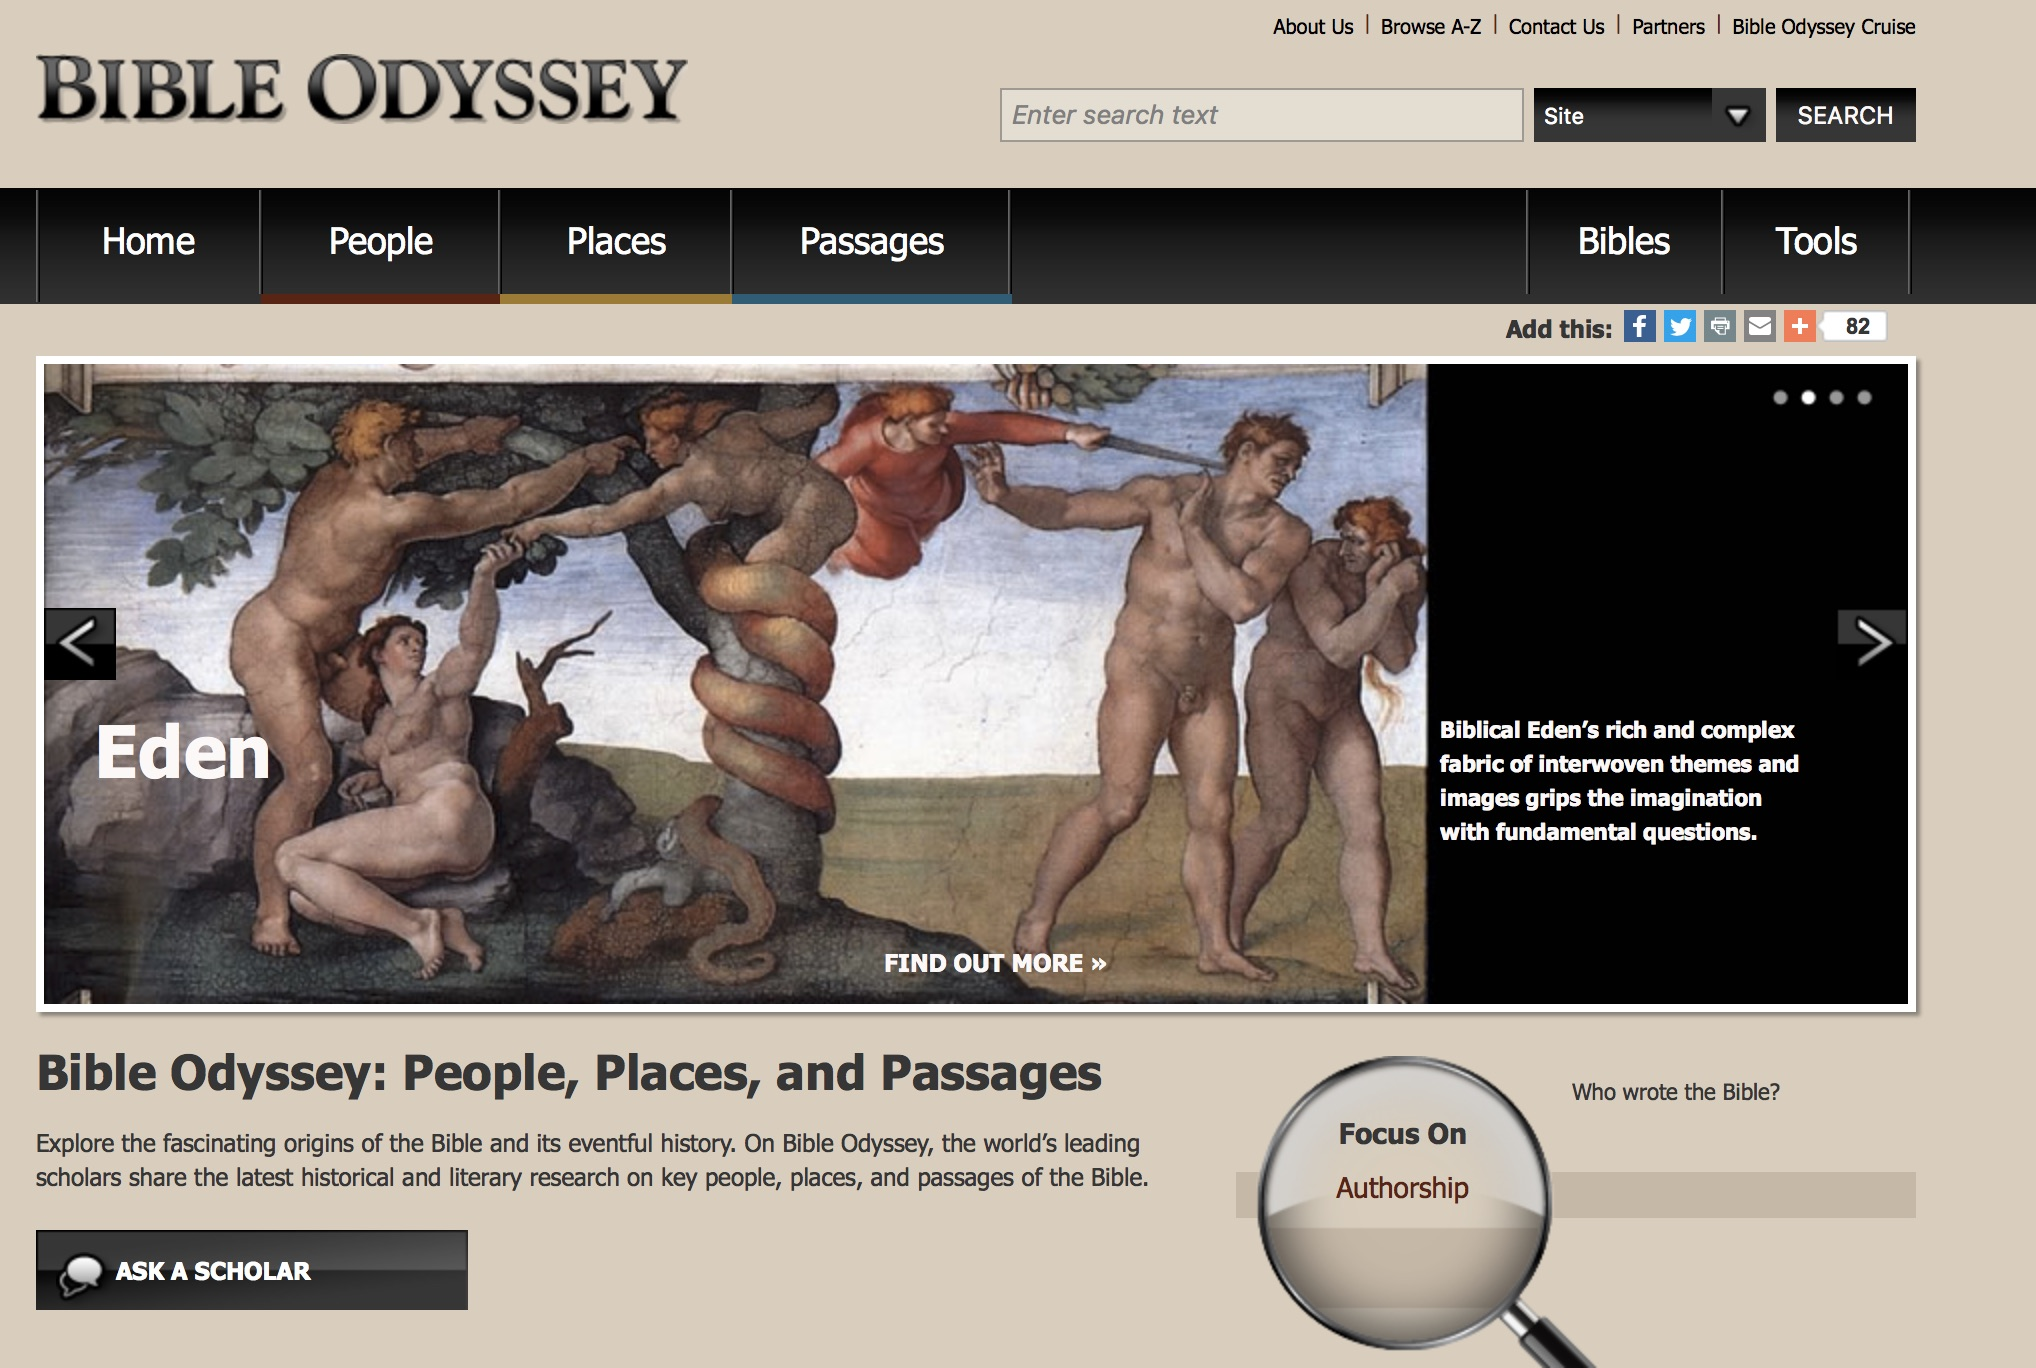 The front page of the website, Bible Odyssey